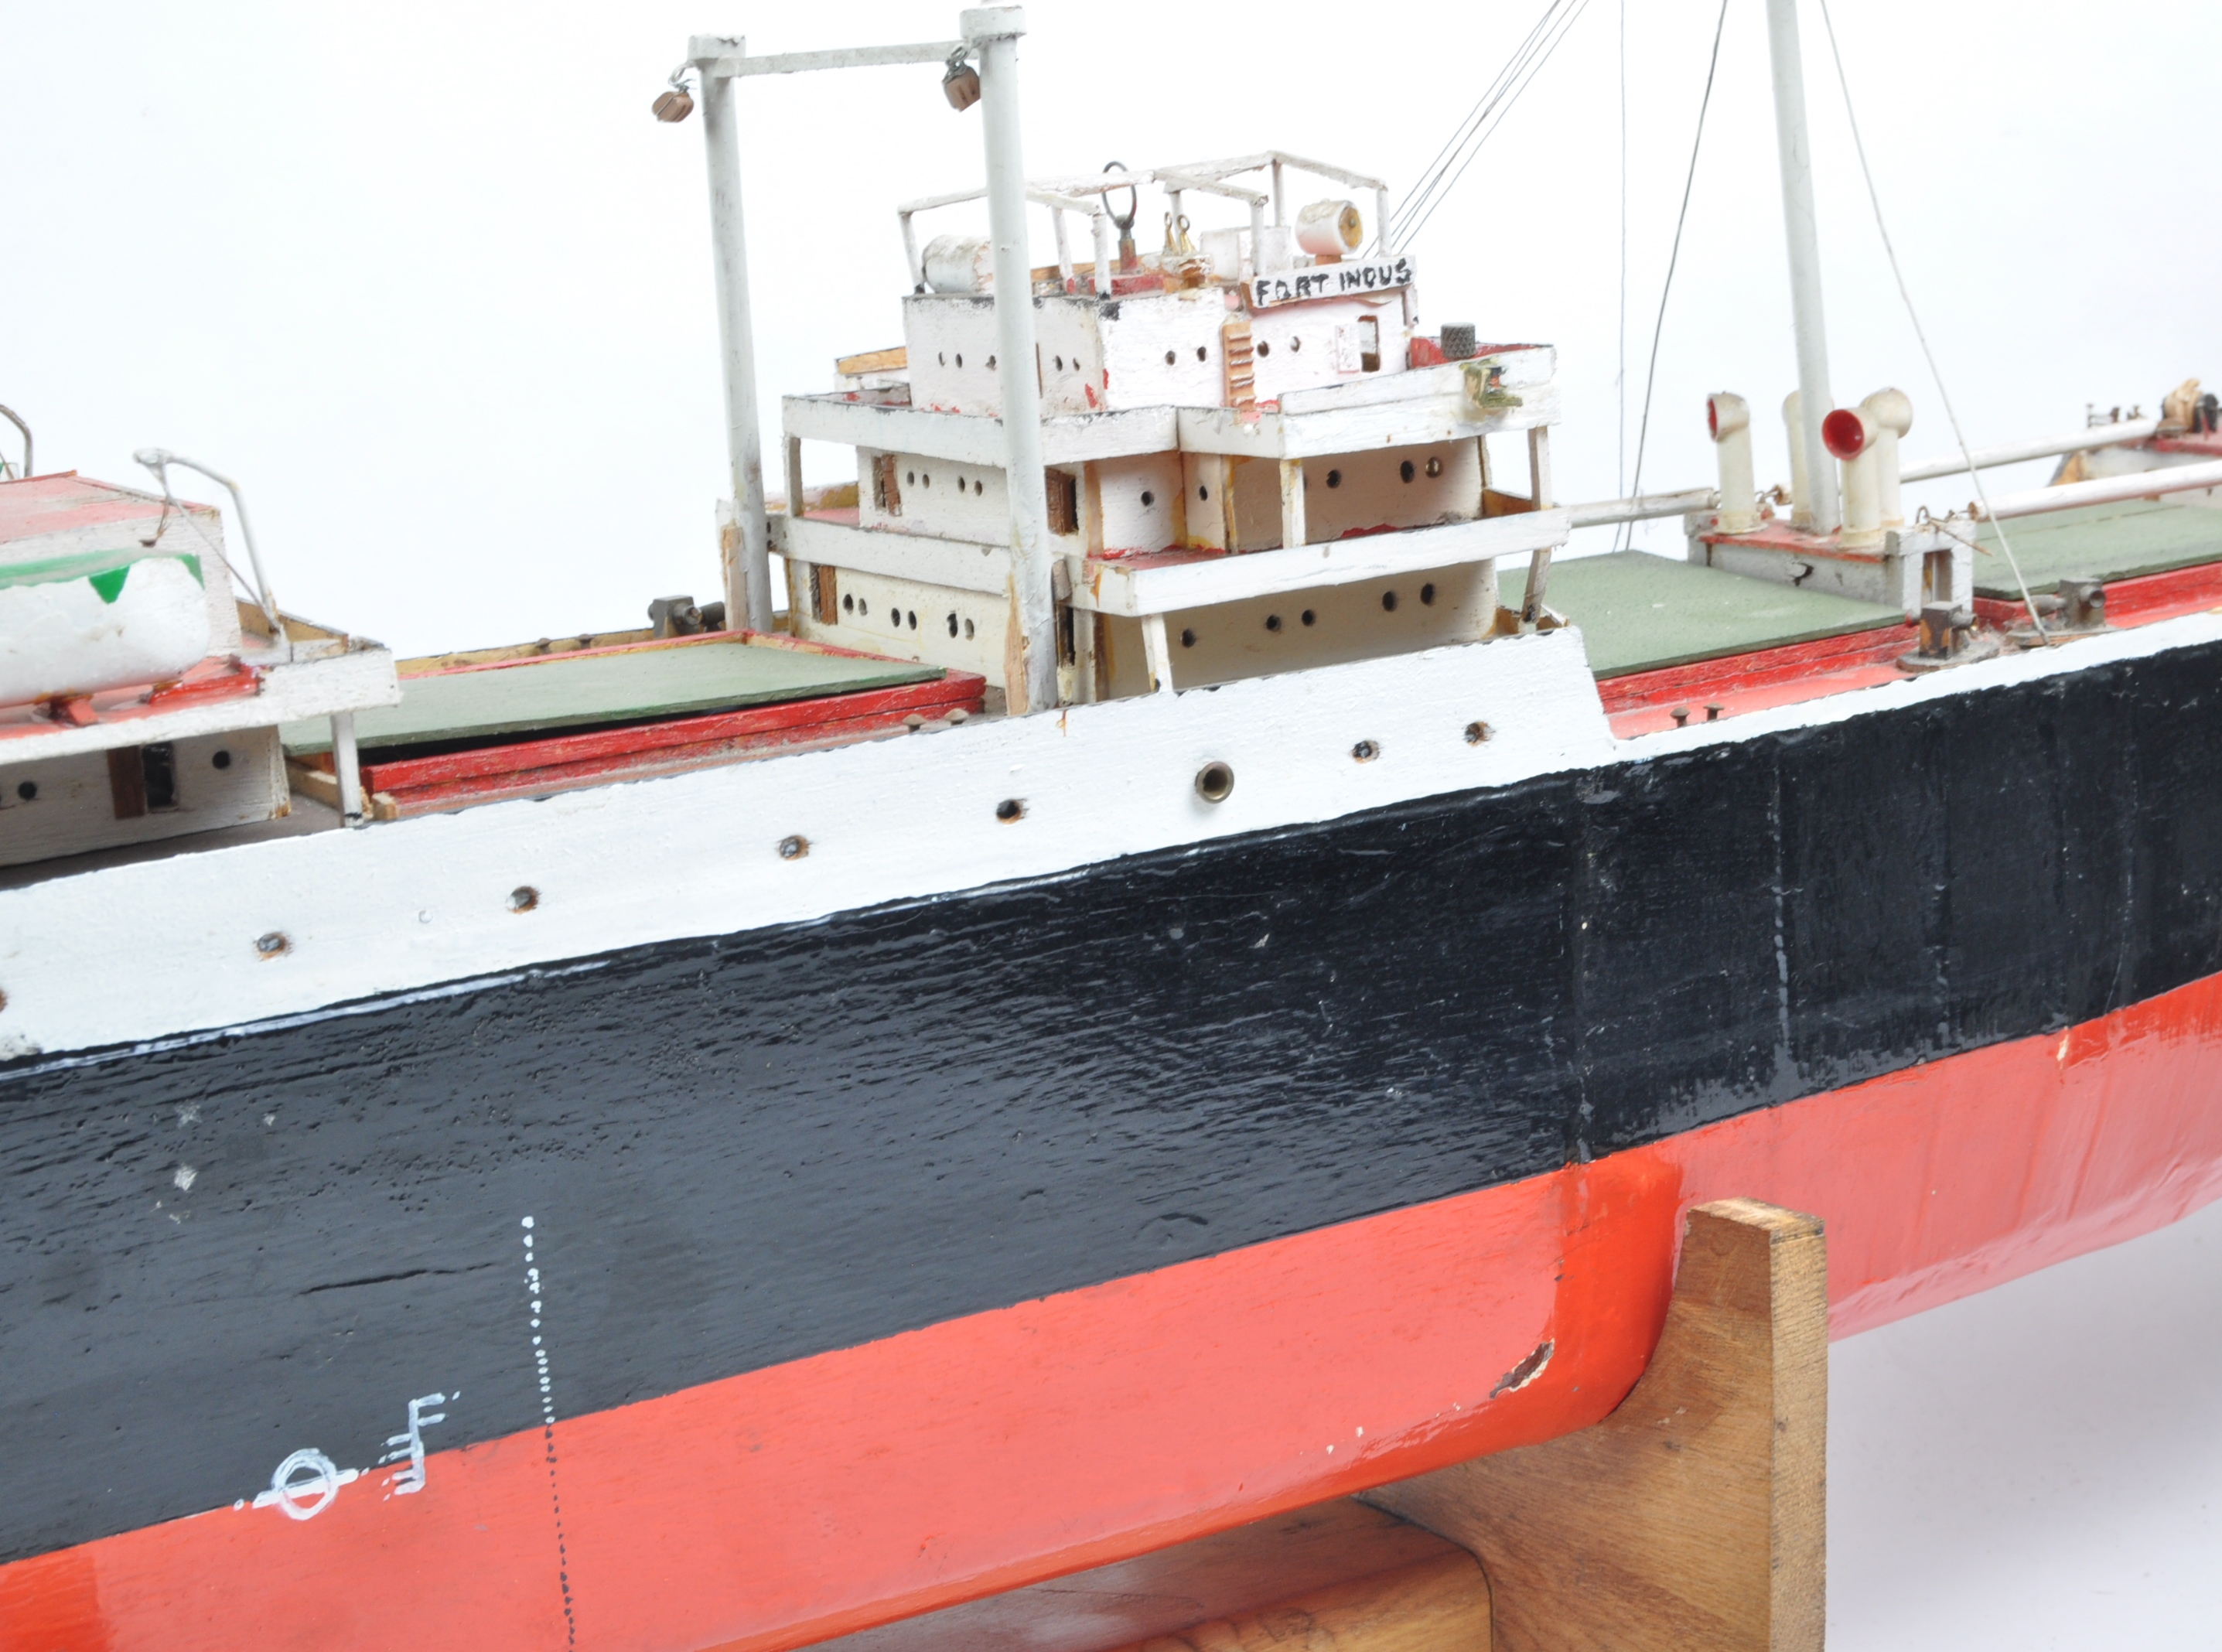 SHIPPING - RADIO CONTROLLED SCALE MODEL ' FORT INDUS ' CARGO SHIP - Image 11 of 11